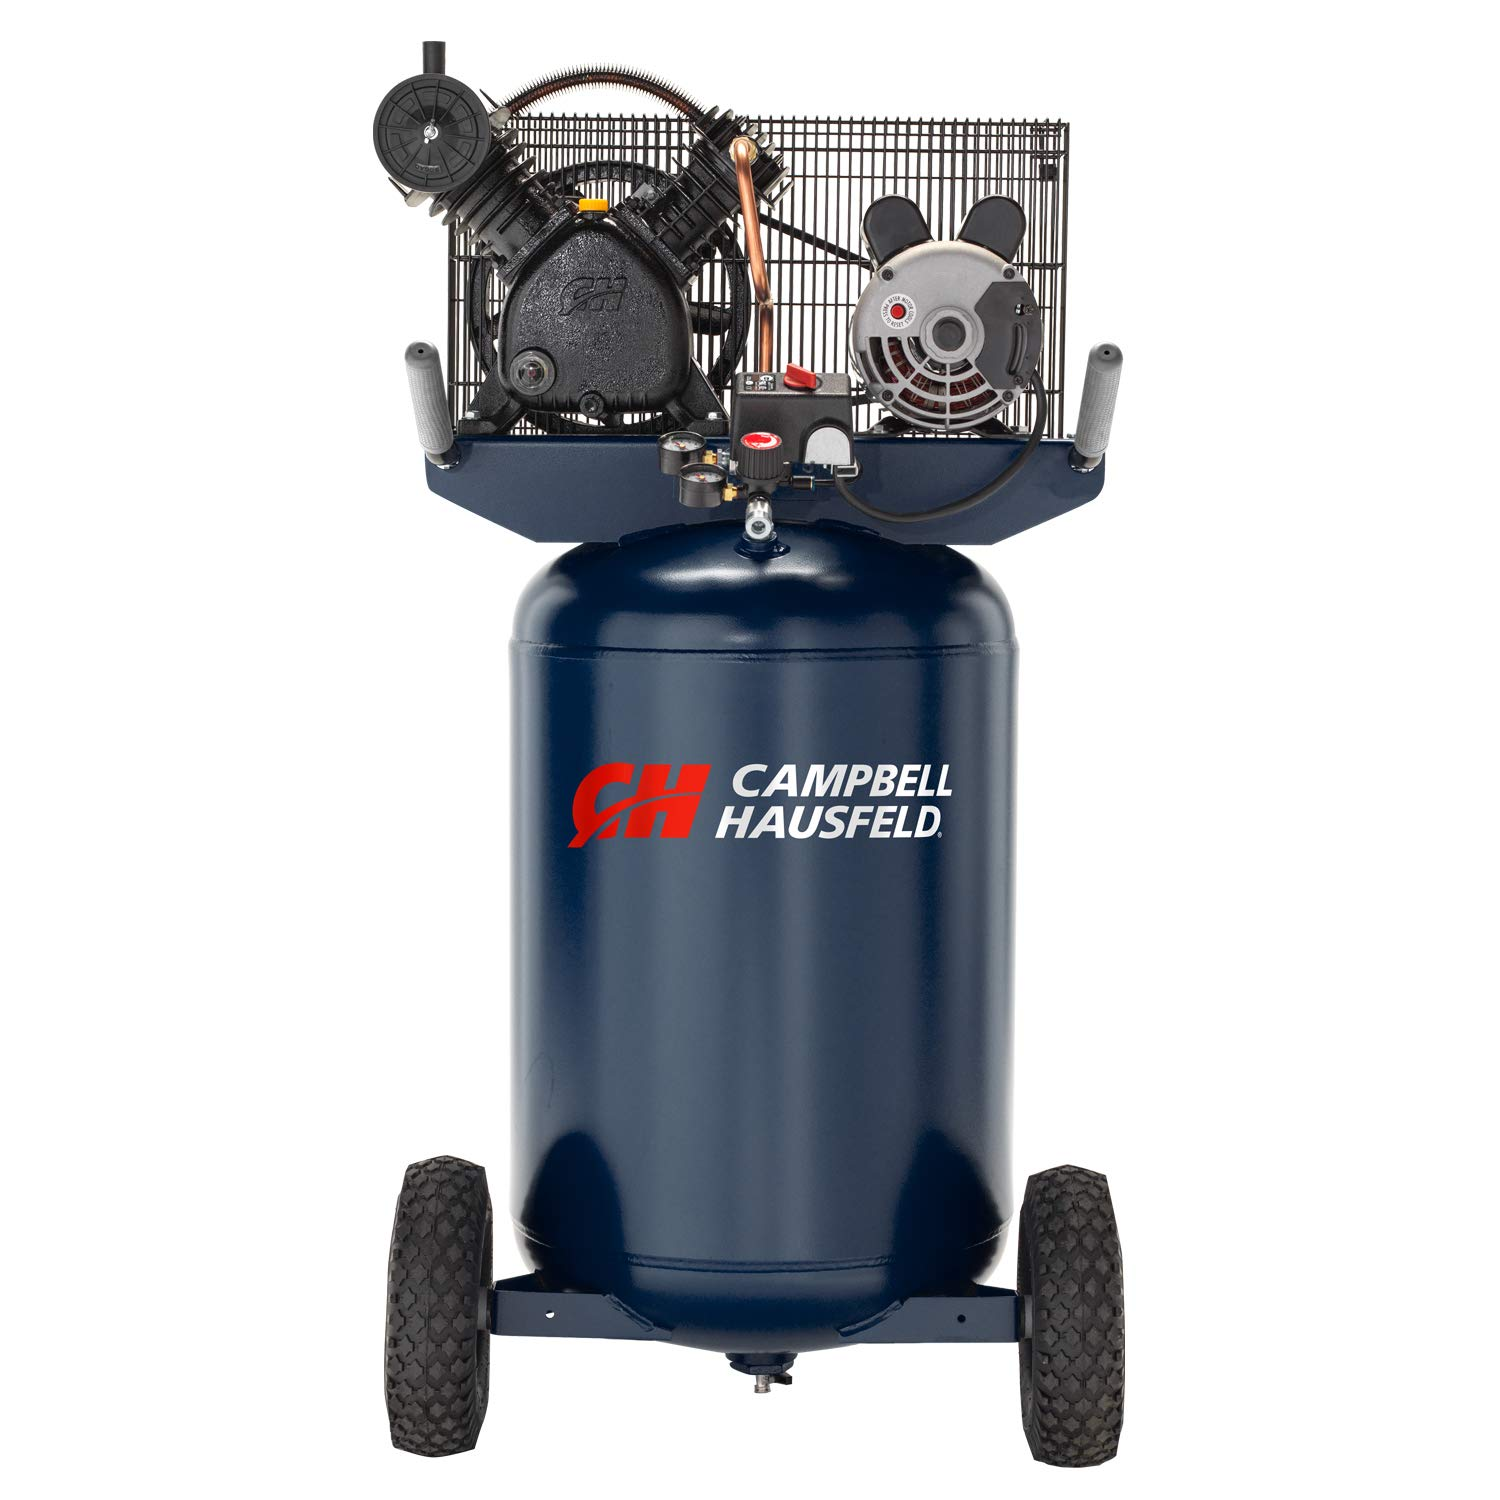 Campbell Hausfeld 30 gallon 2 Stage Air Compressor (XC302100)